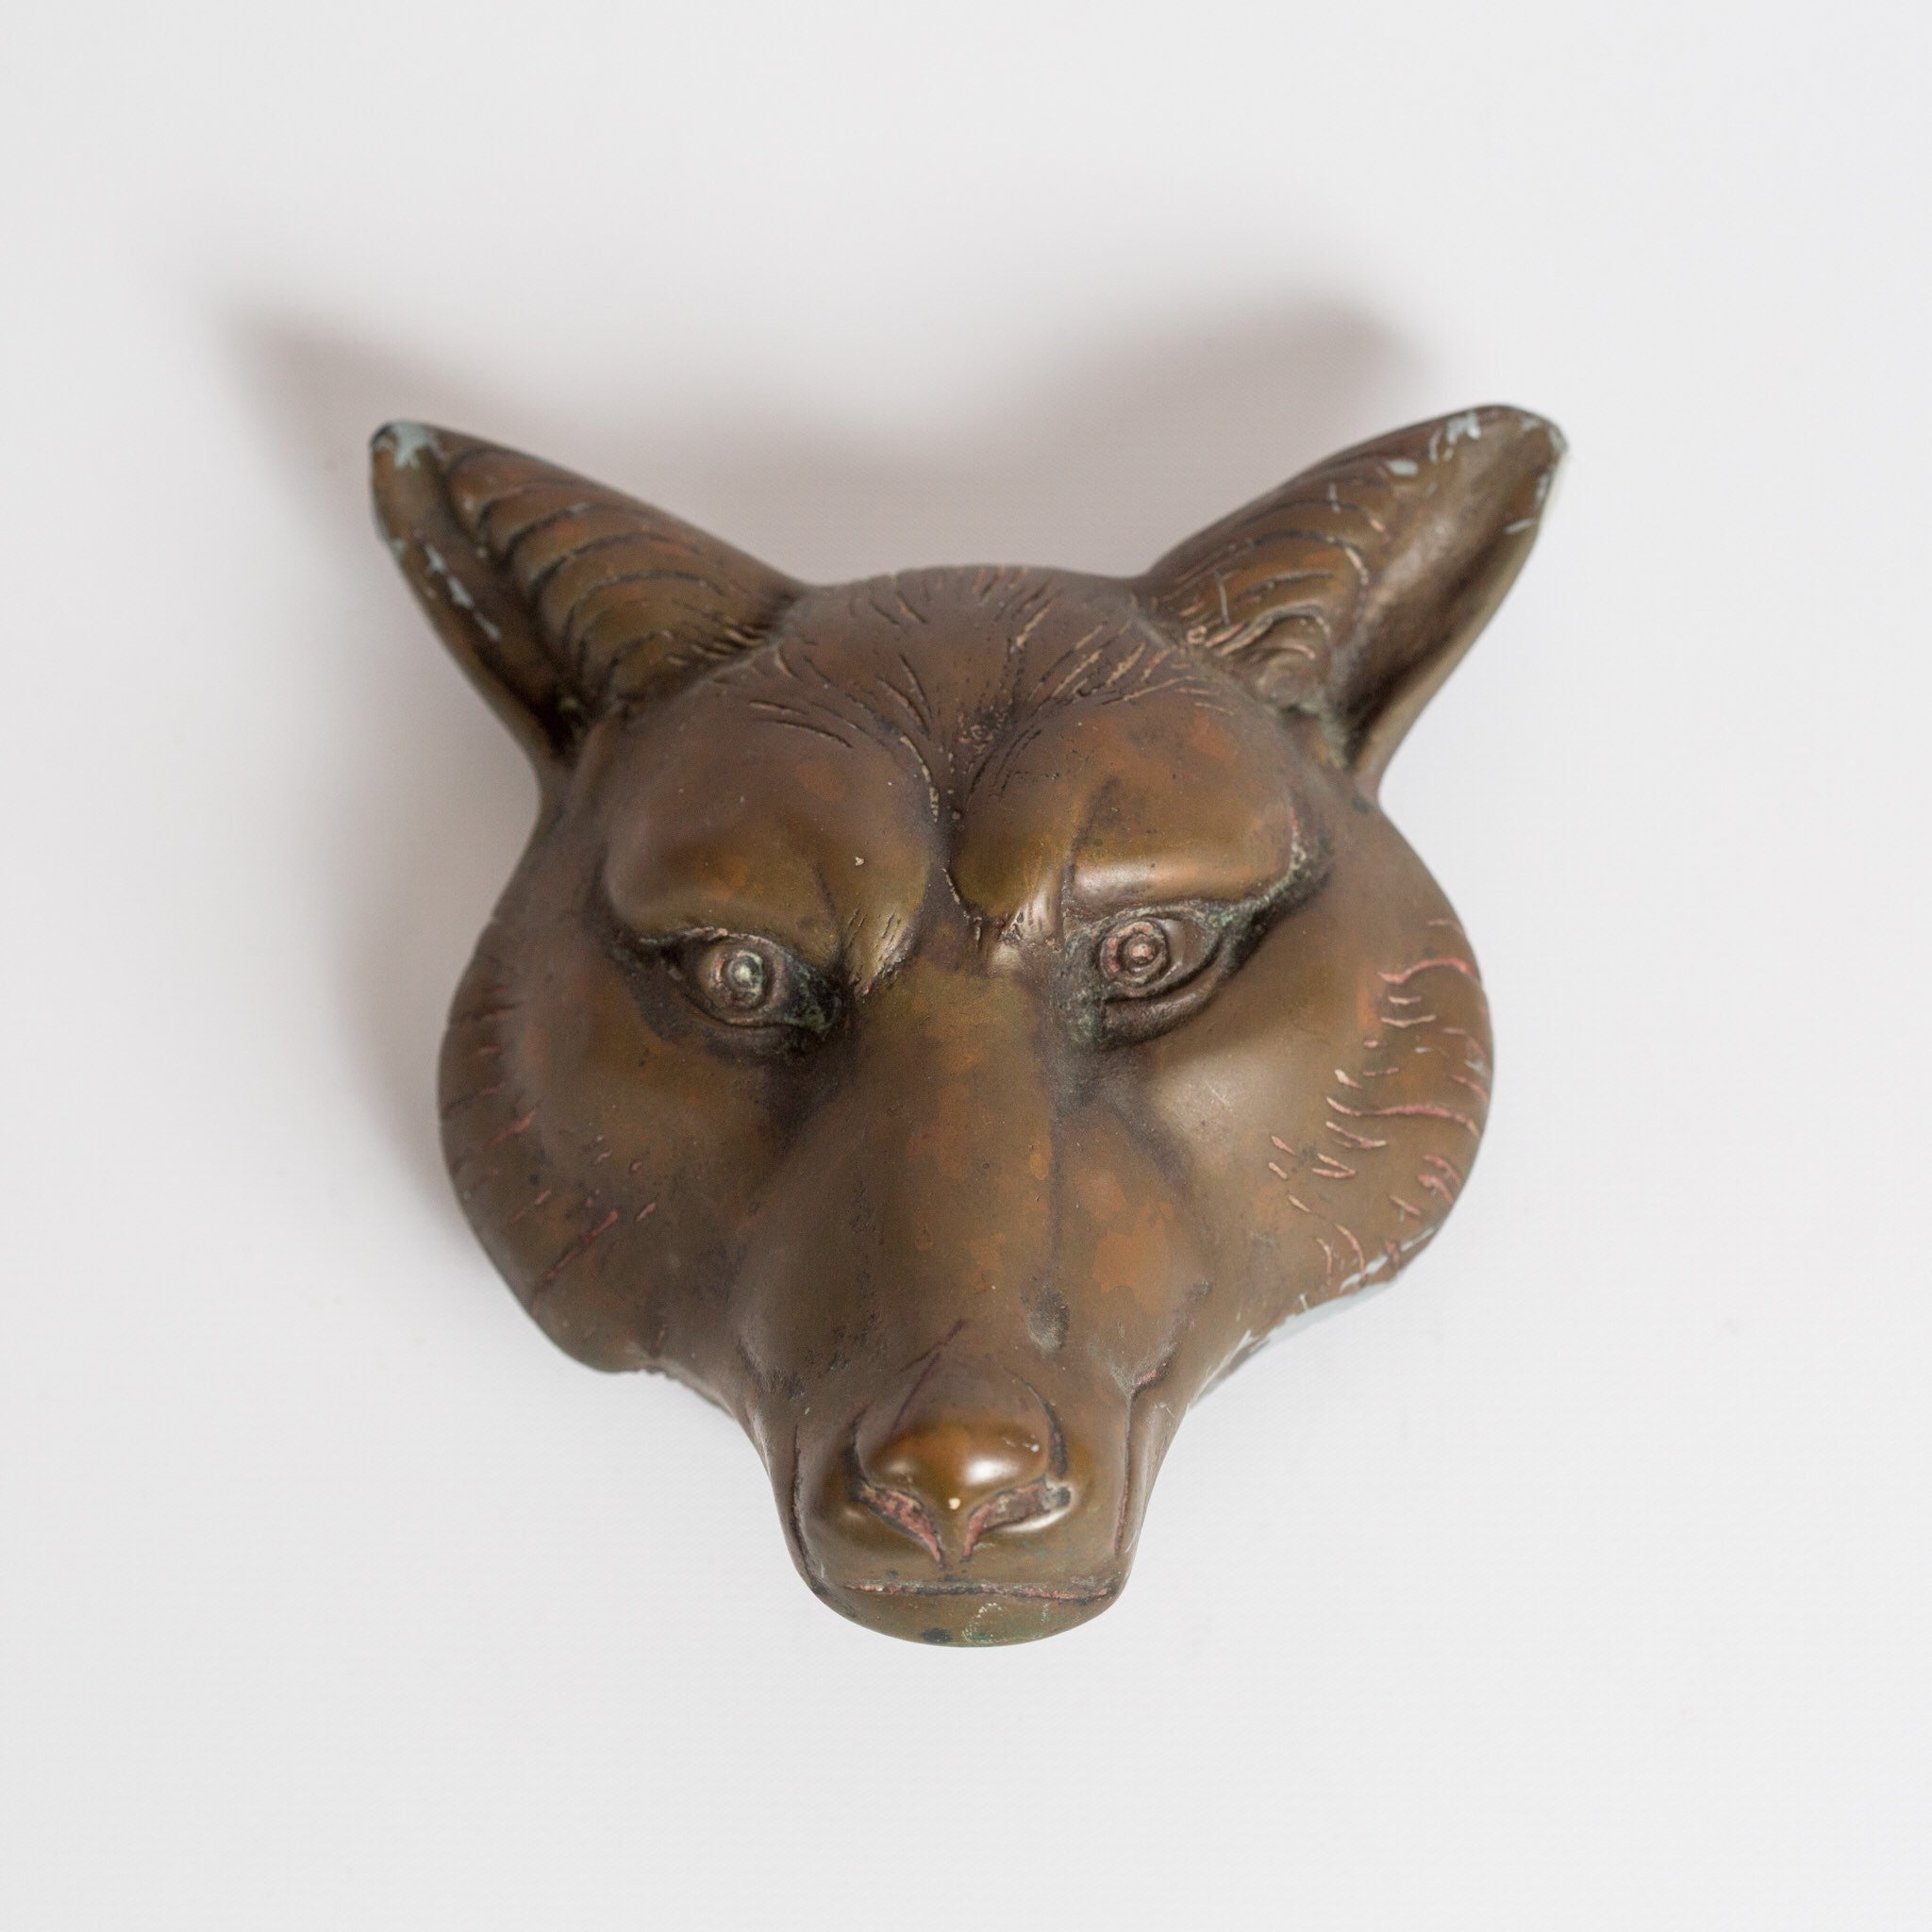 Antique Very Sly Fox Door Knocker Large Heavy Hand Cast Metal Original  Patina Victorian Era Gothic Revival Style Wolf Arts And Crafts Period